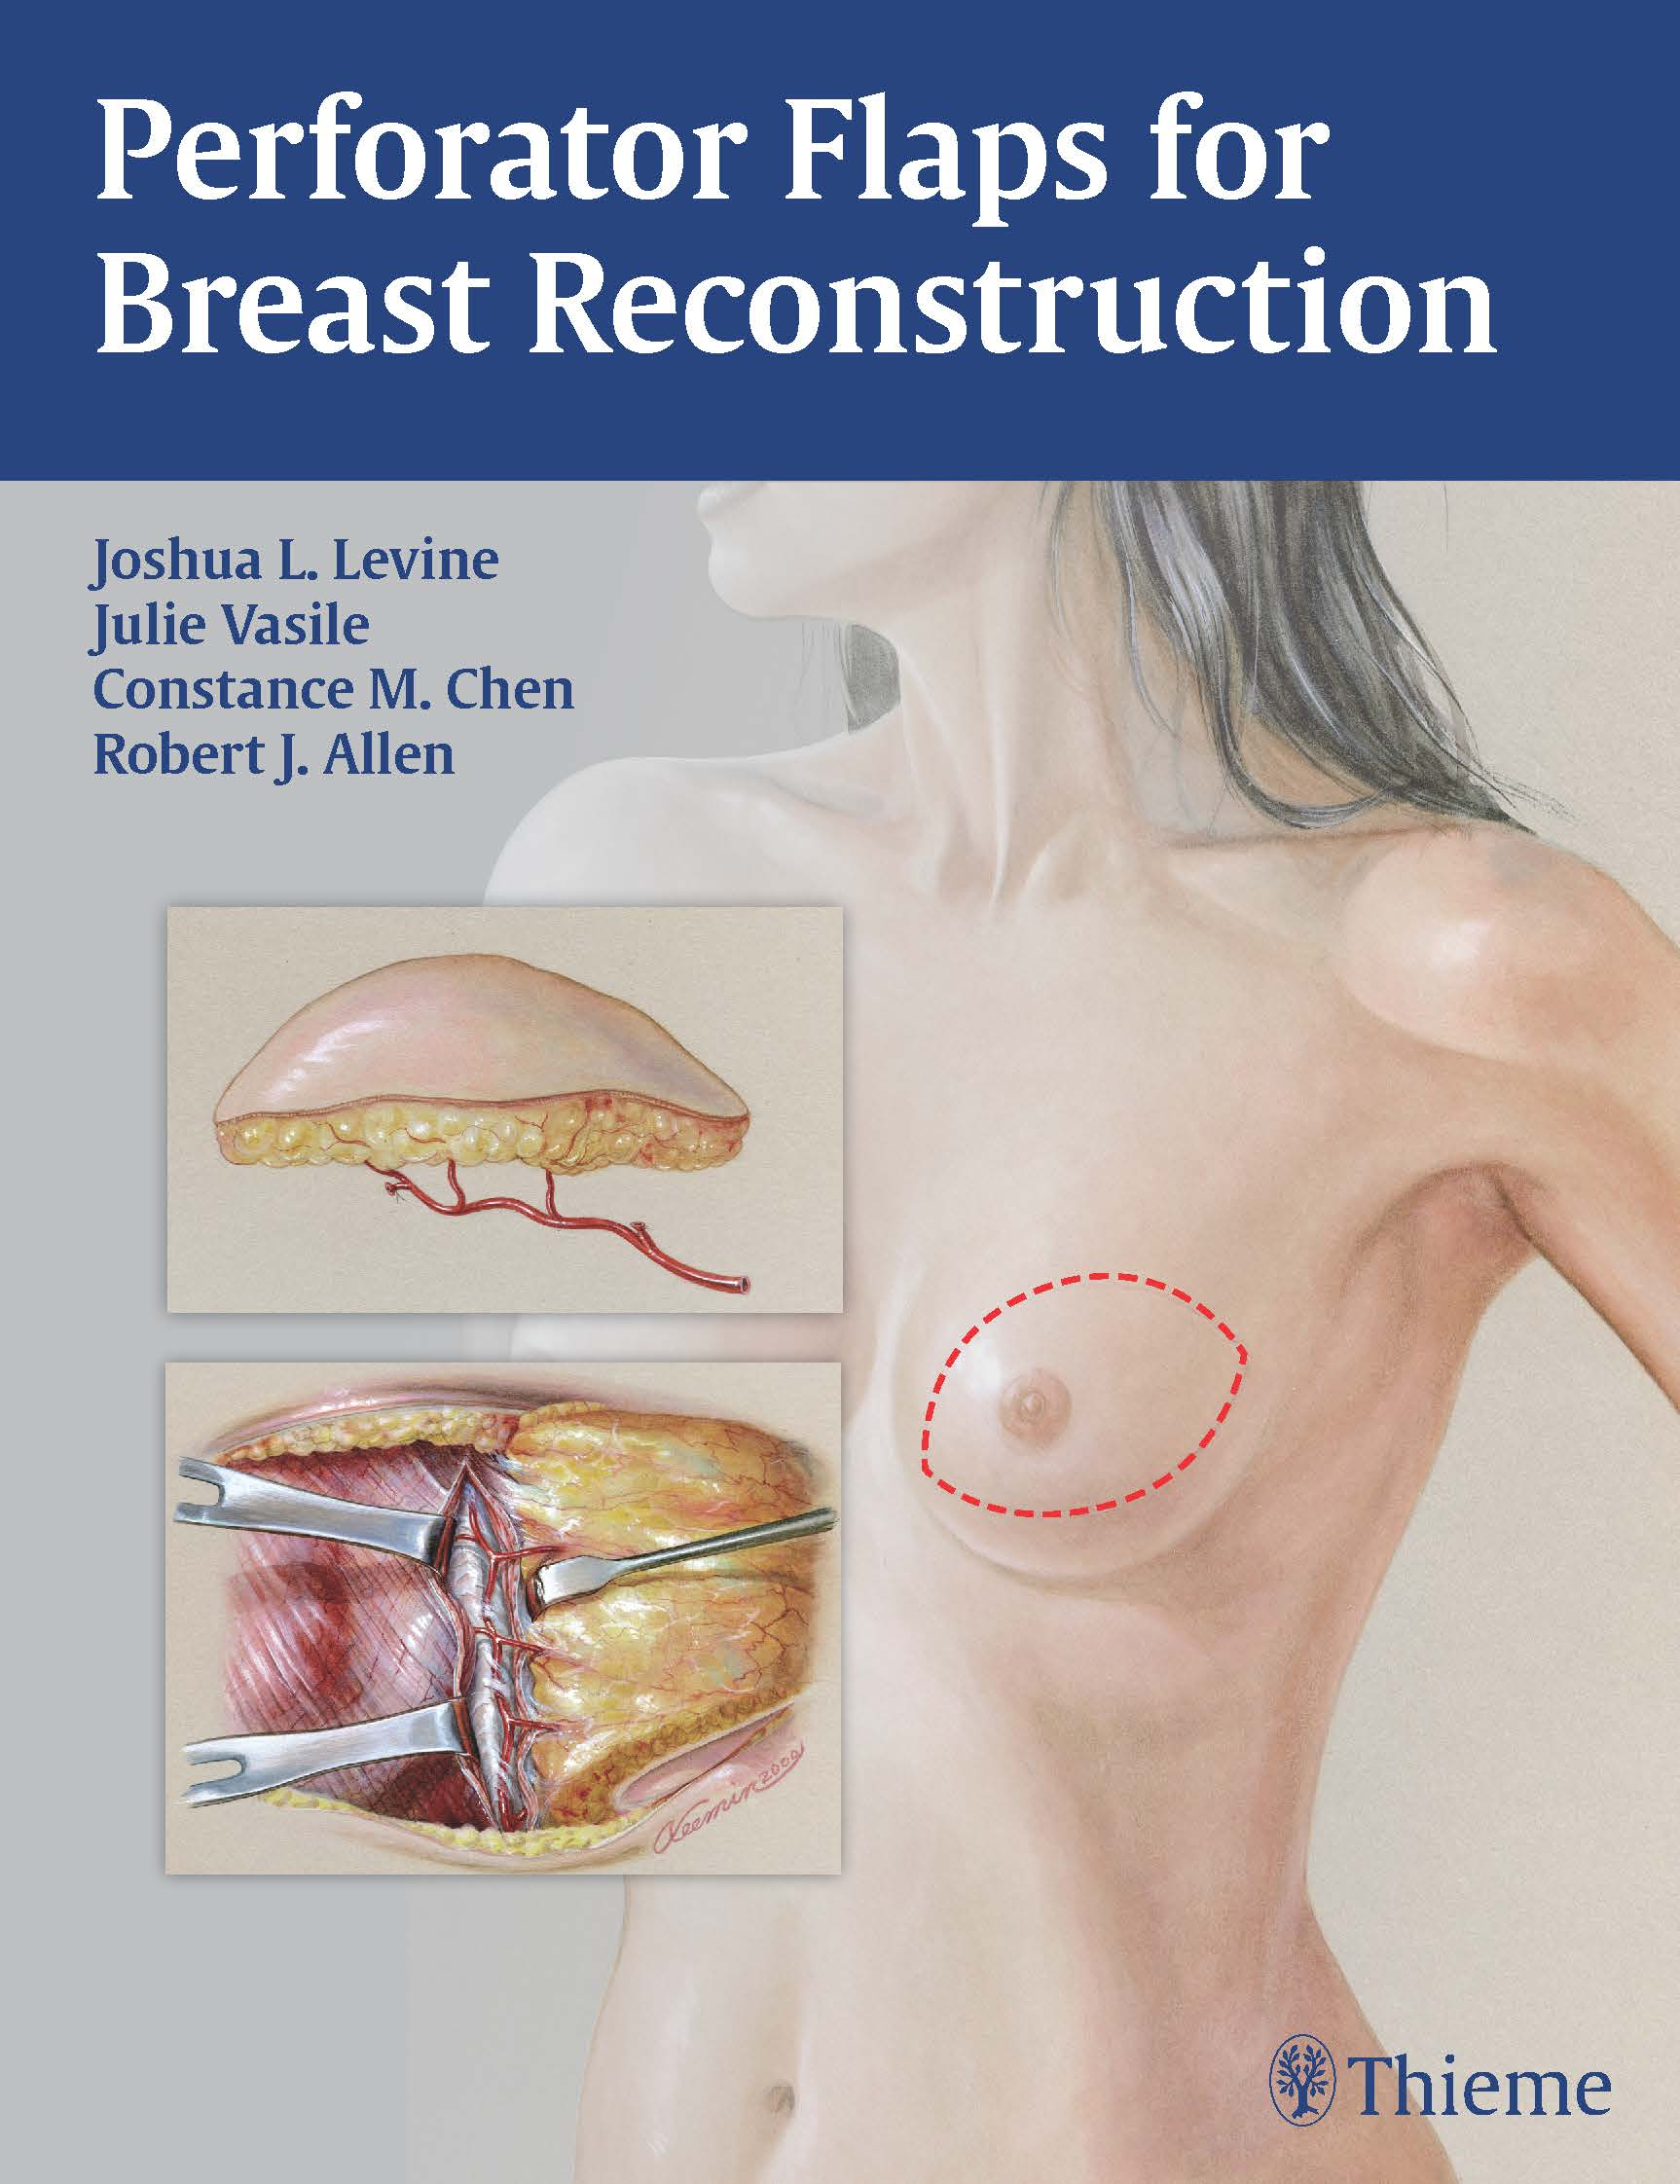 Perforator Flaps for Breast Reconstruction Book Cover Final - 11-04-15.jpg